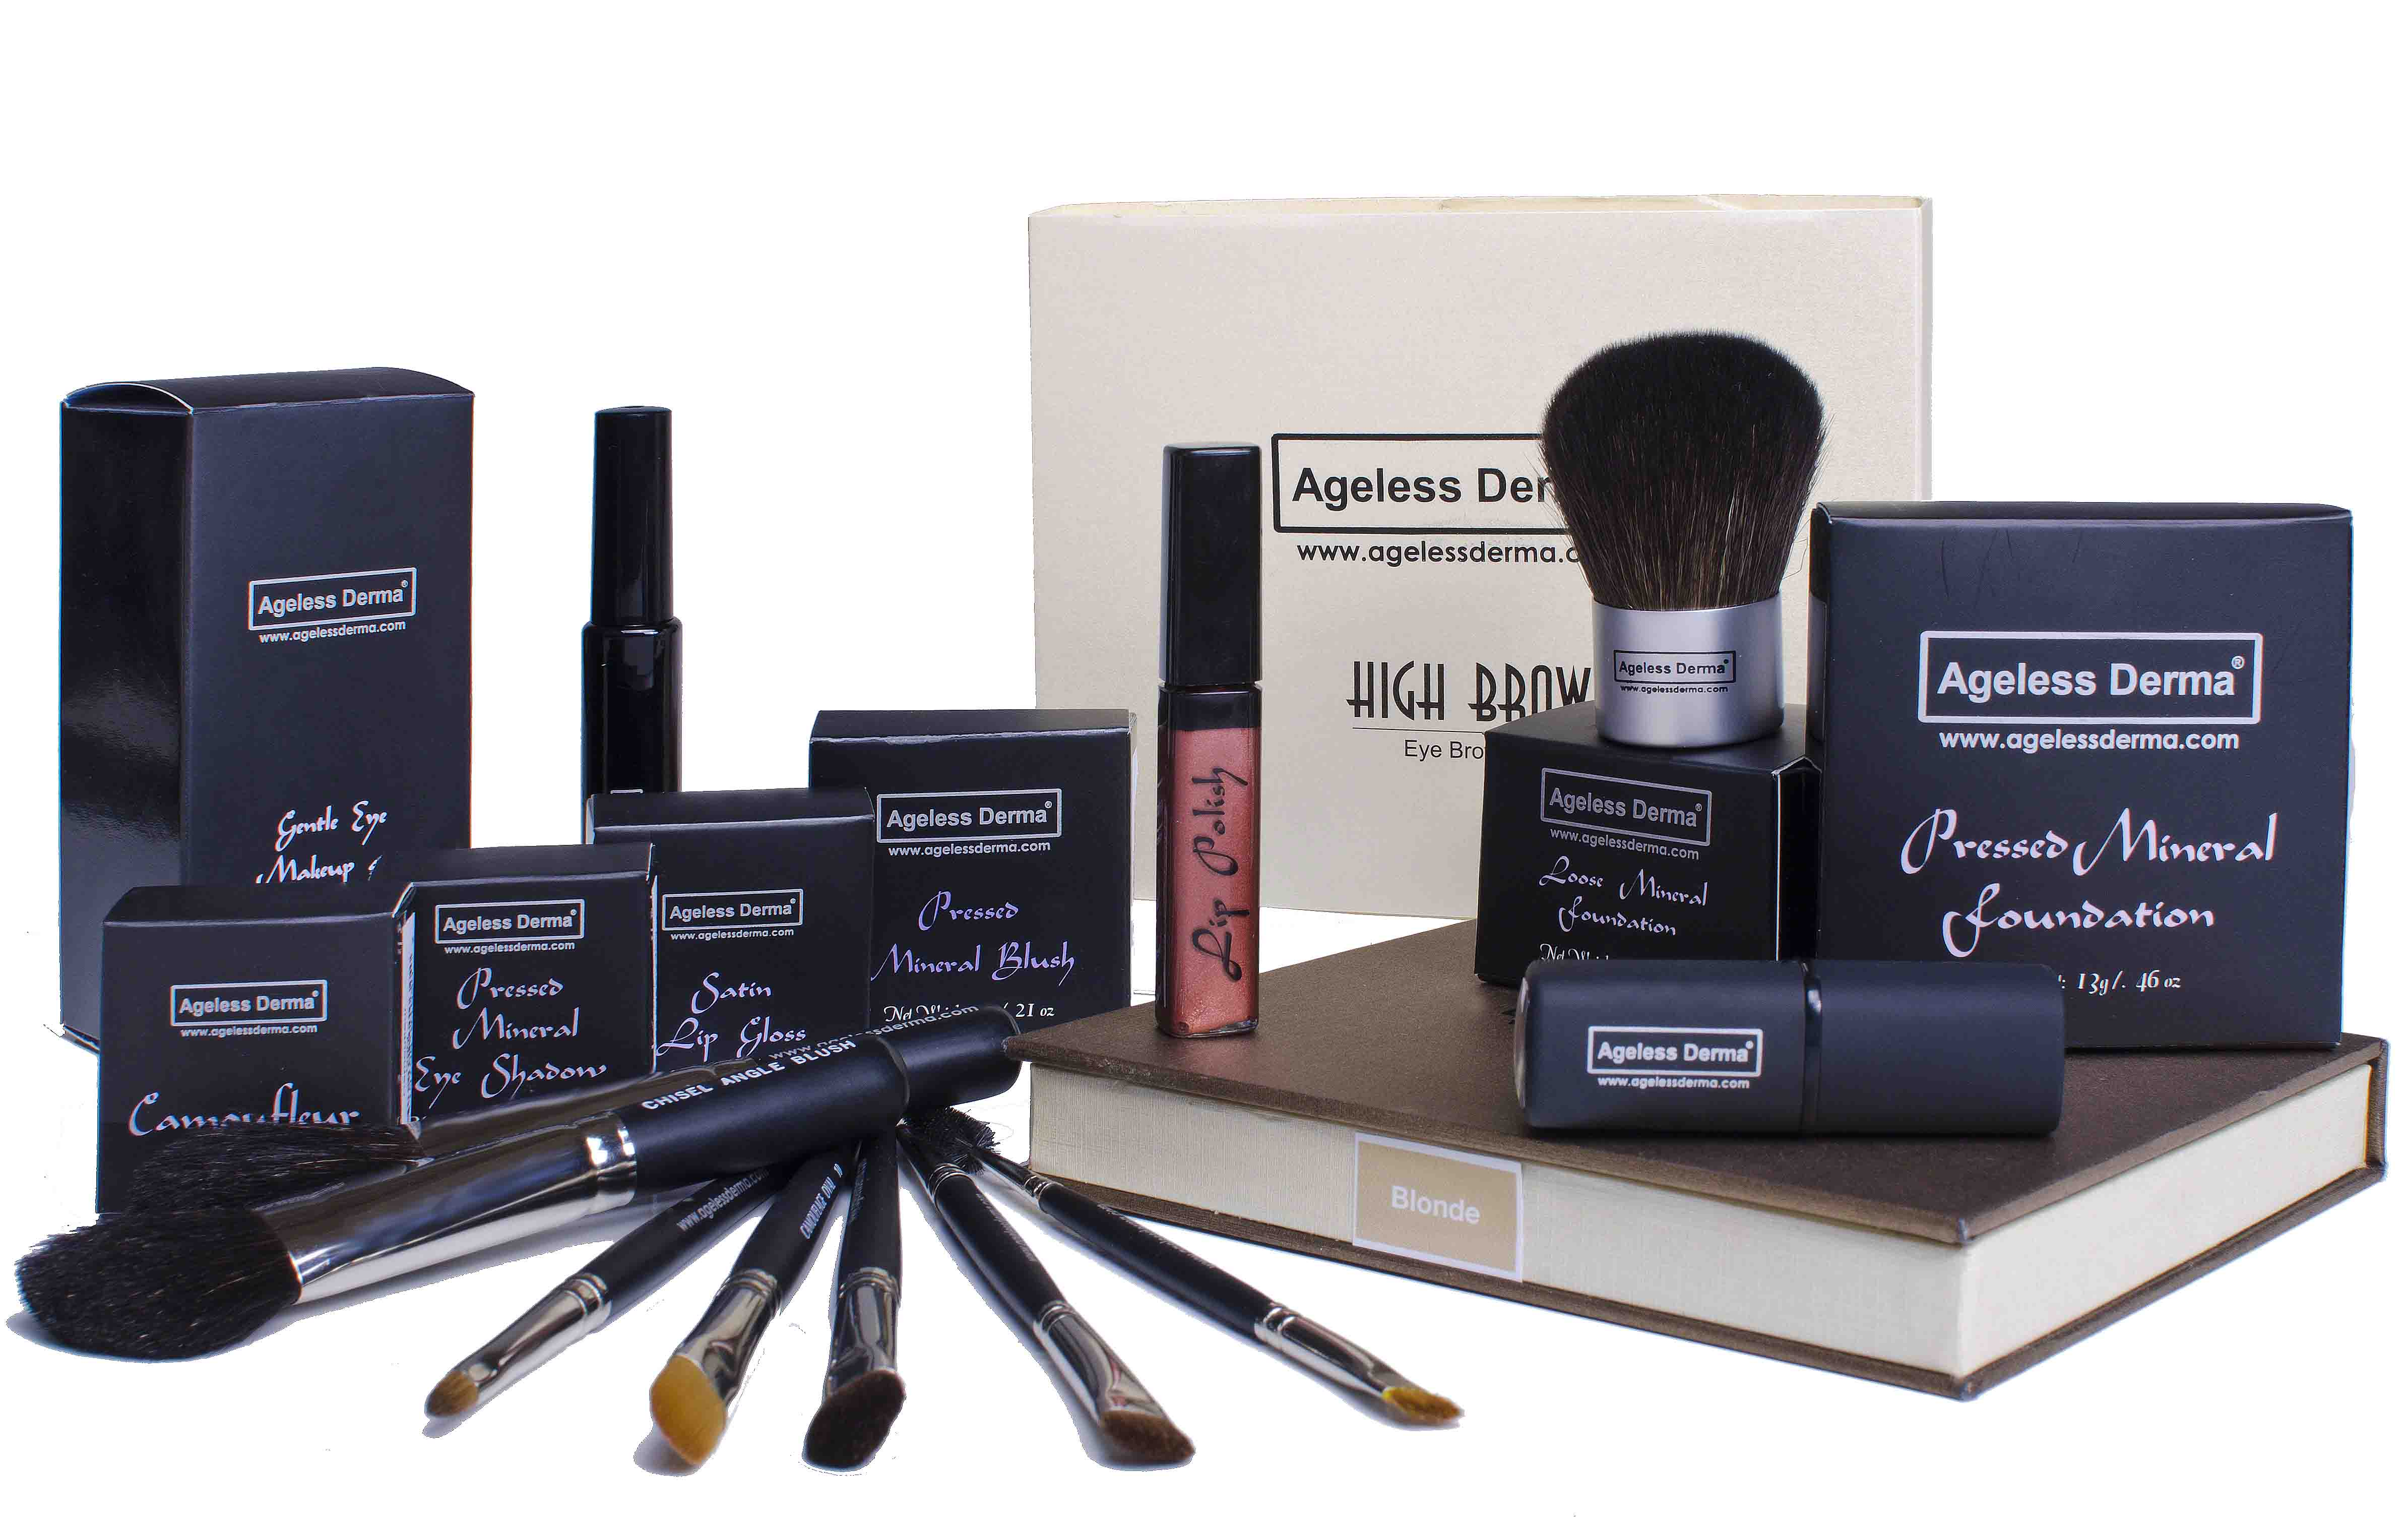 Ageless Derma Launches Their Latest Mineral Makeup Line ...